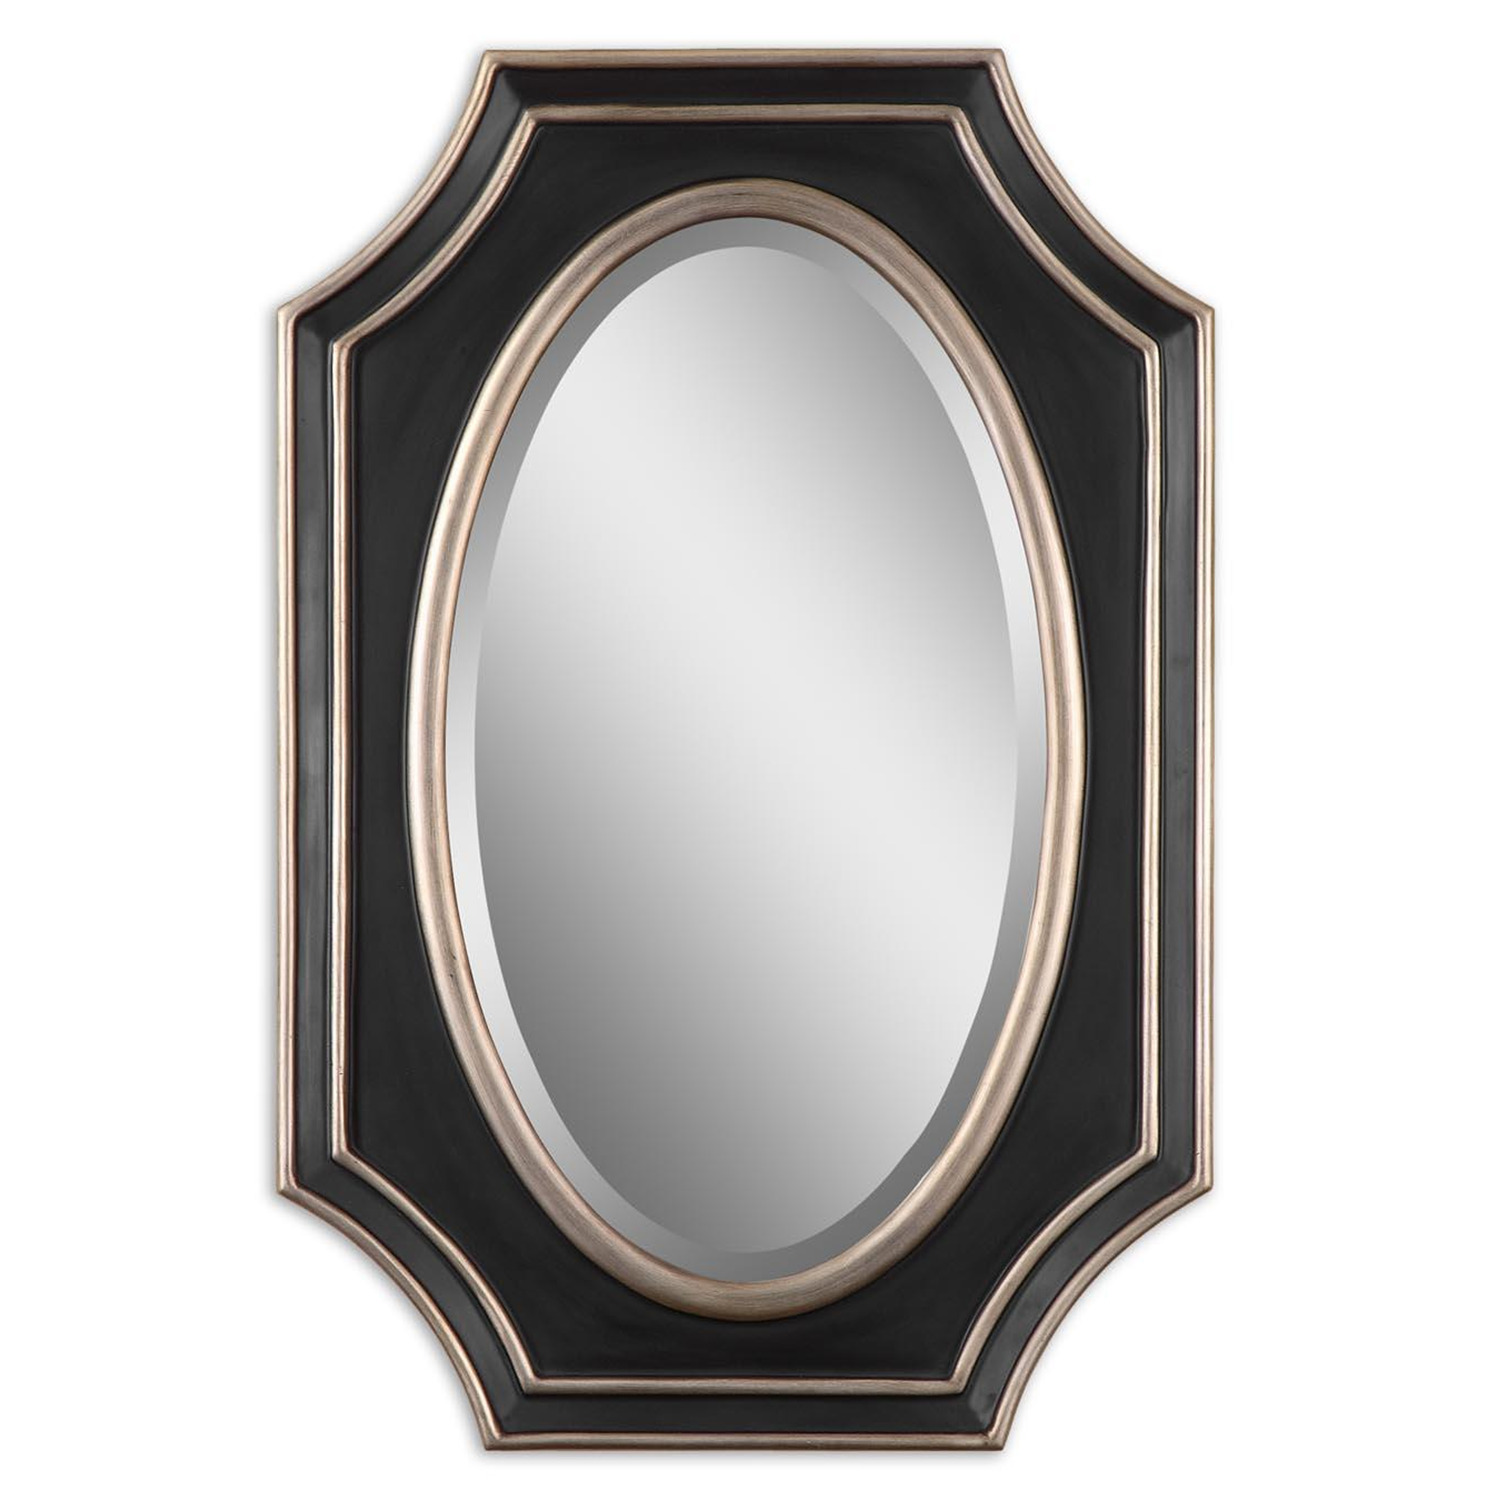 Uttermost shapely decorative wall mirror by oj commerce for Decorative wall mirrors